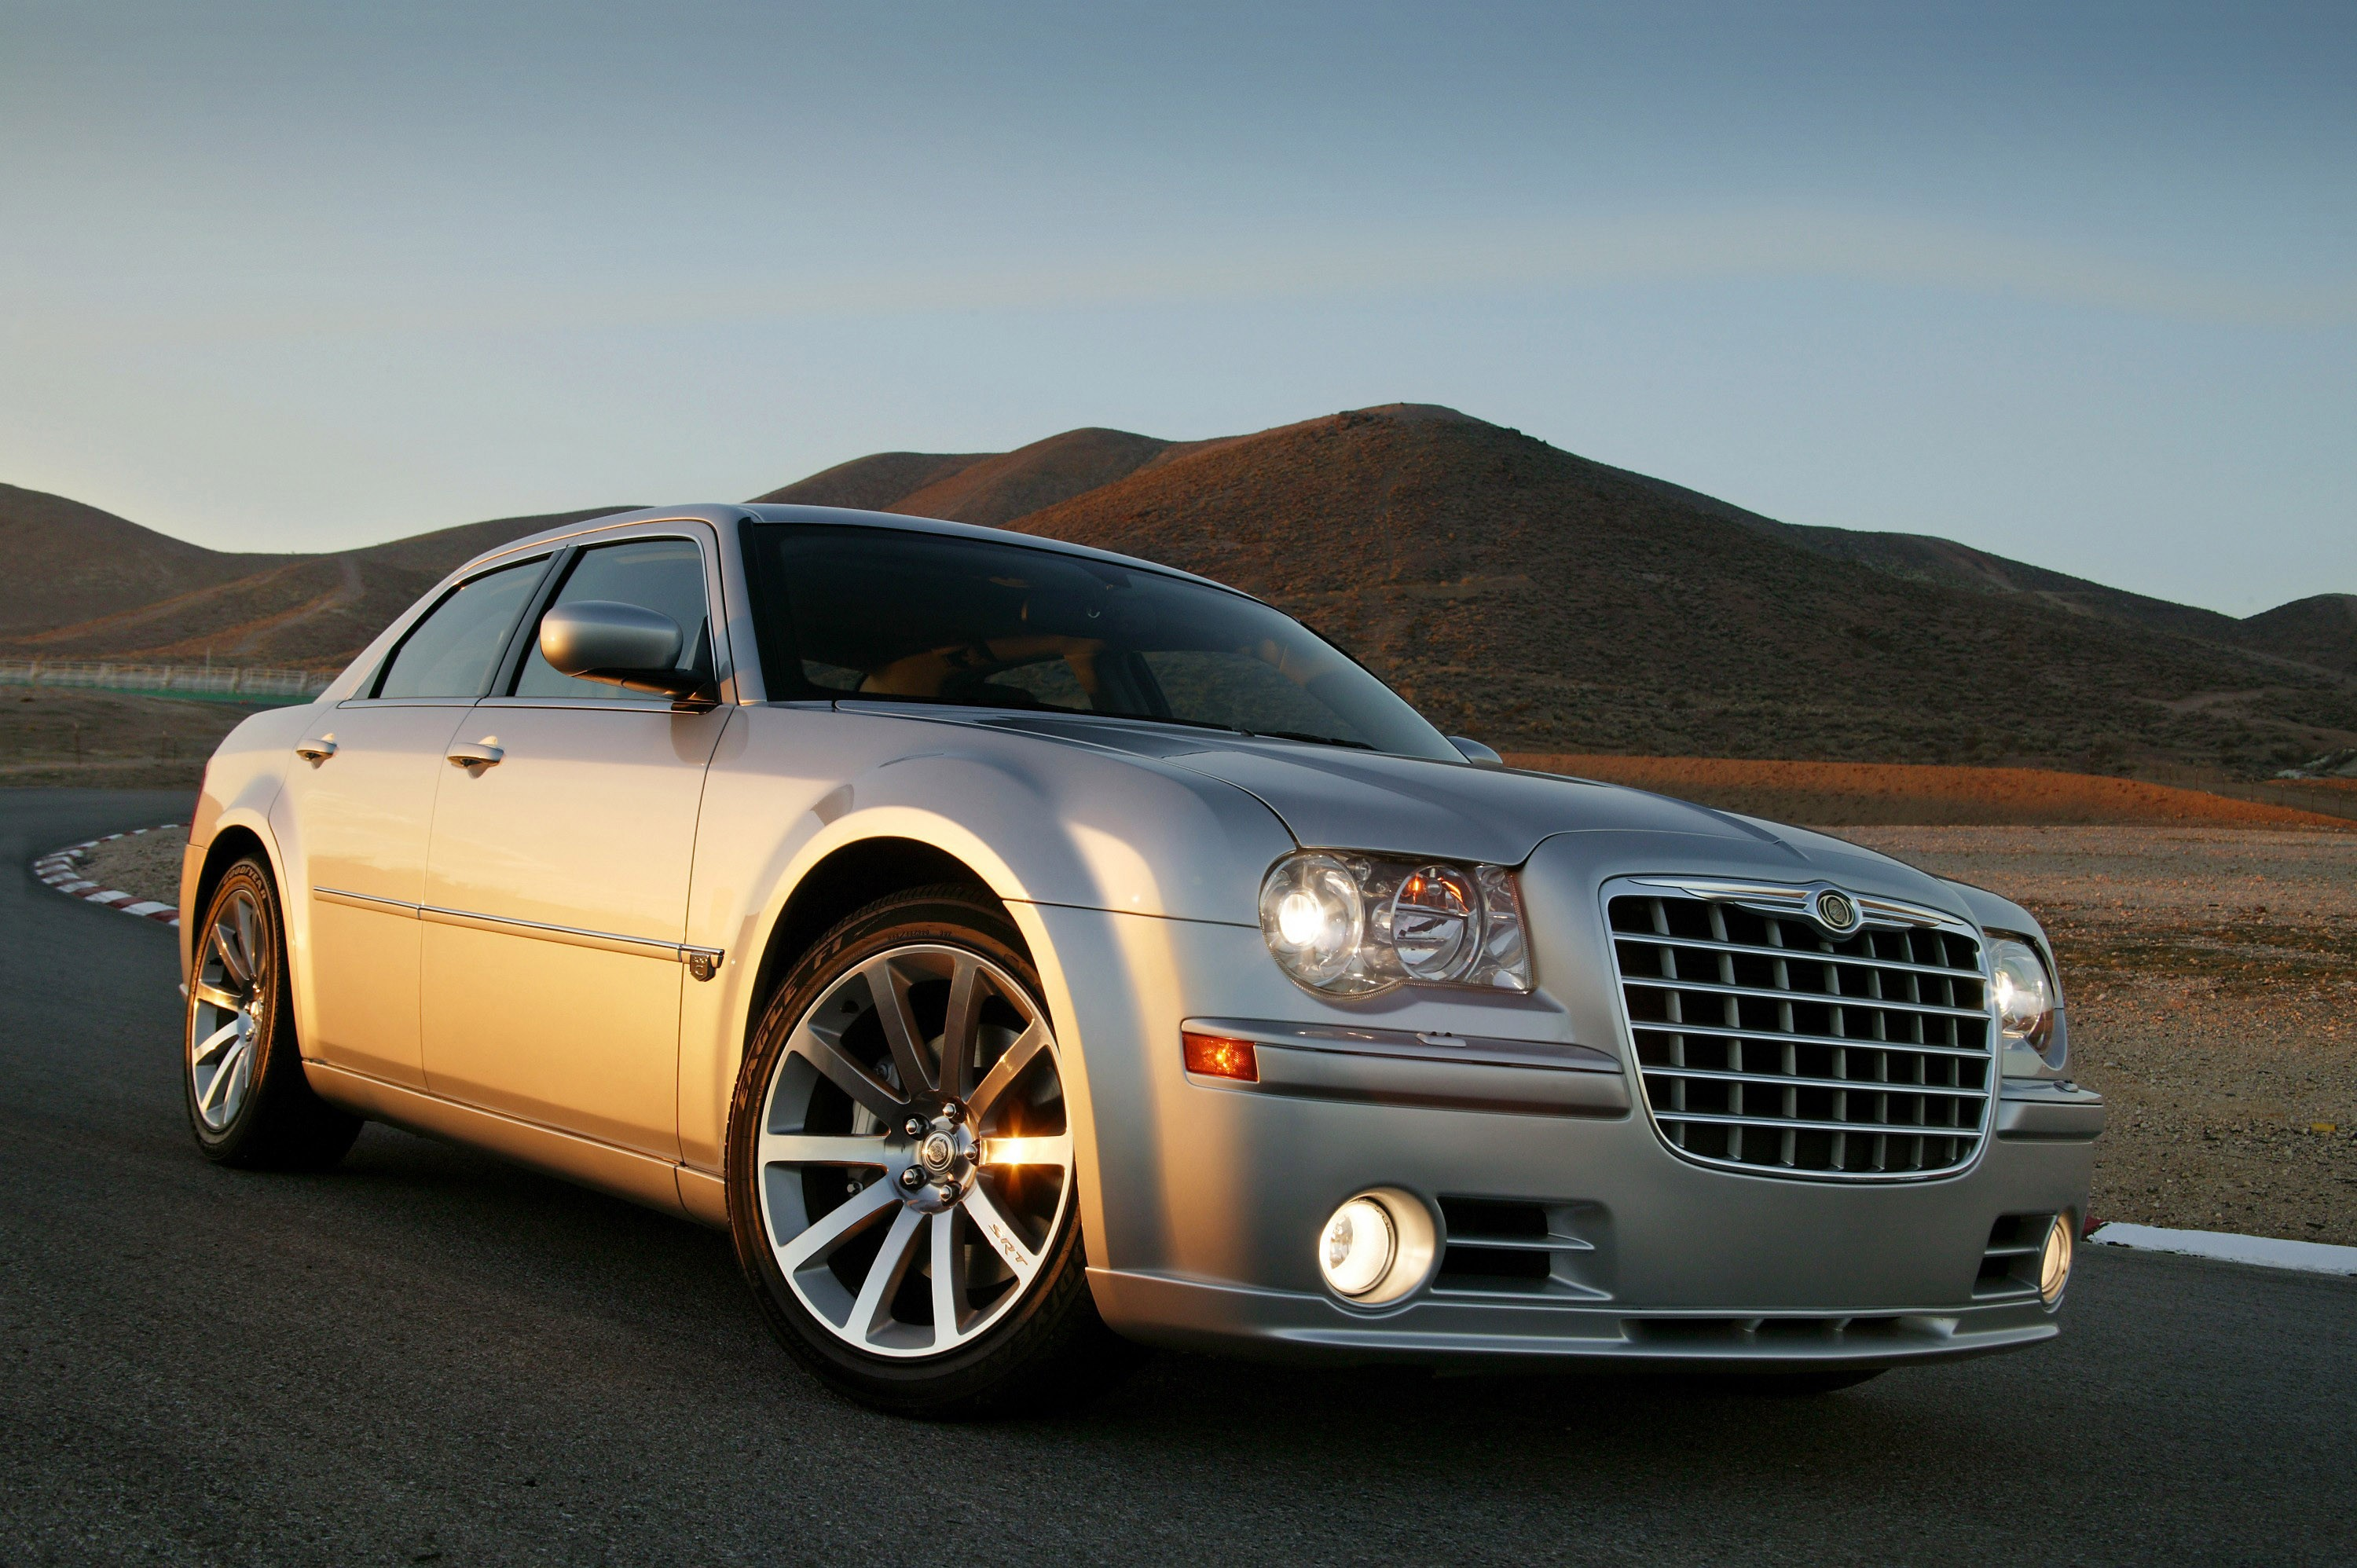 chrysler dsc auto dealer car vehicle group abbotsford srt used lifestyle